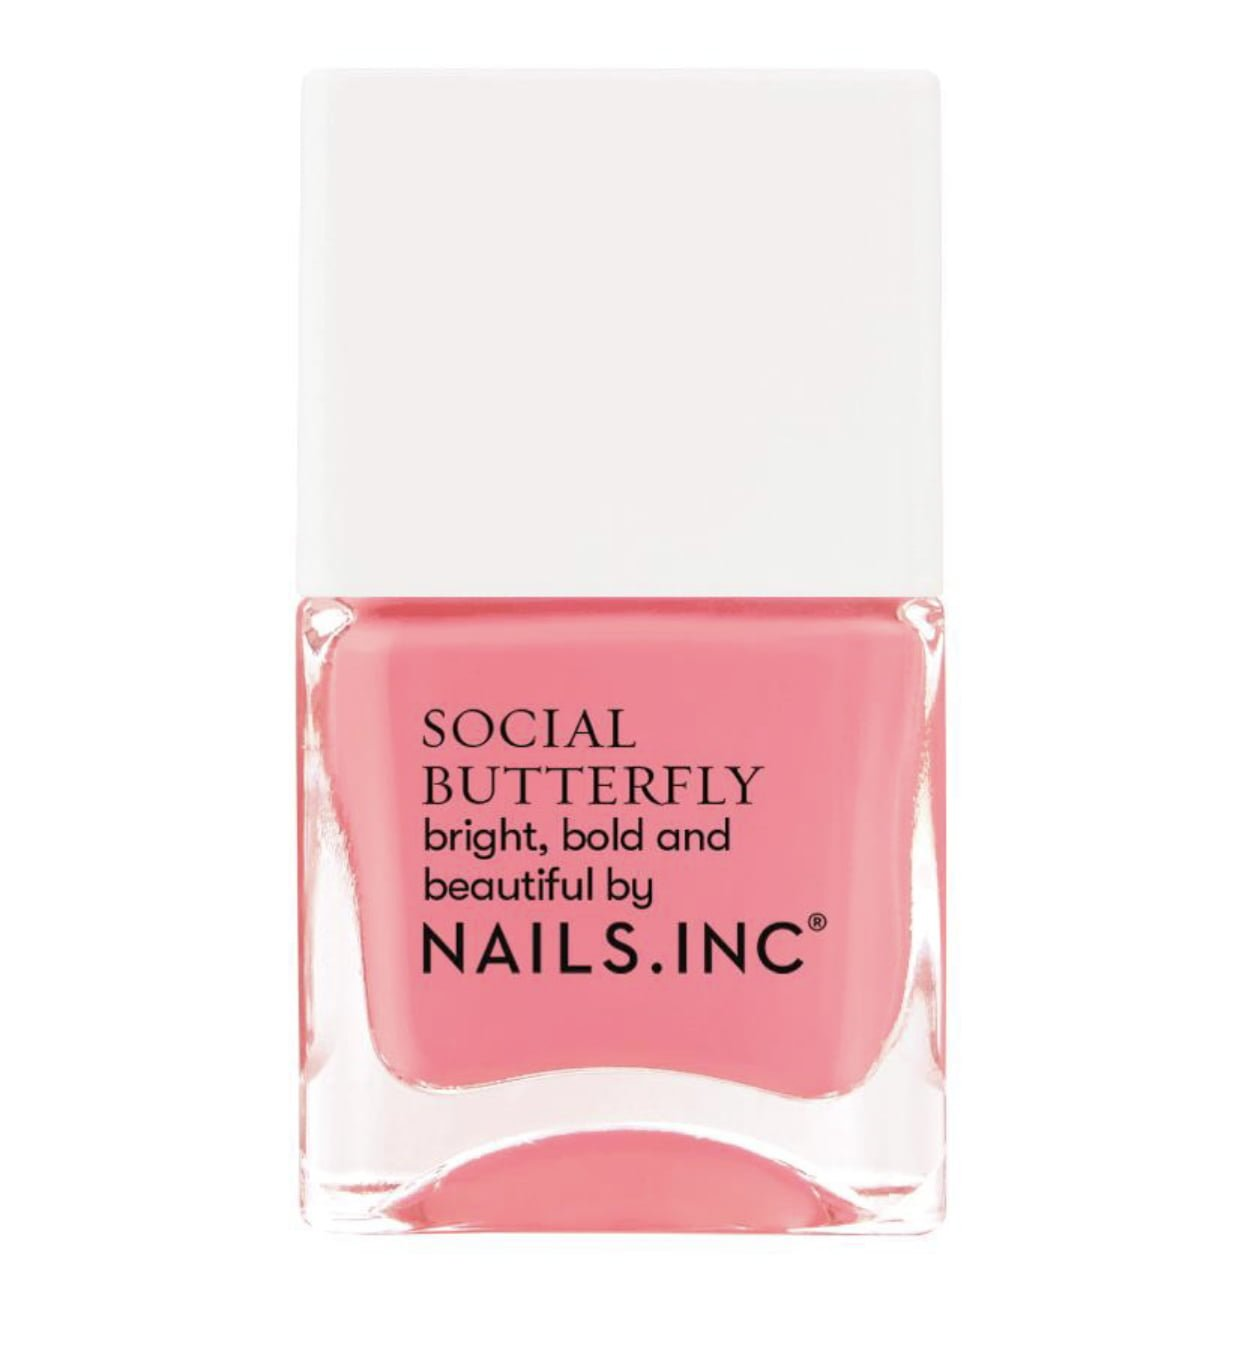 Nails Inc Social Butterfly Collection